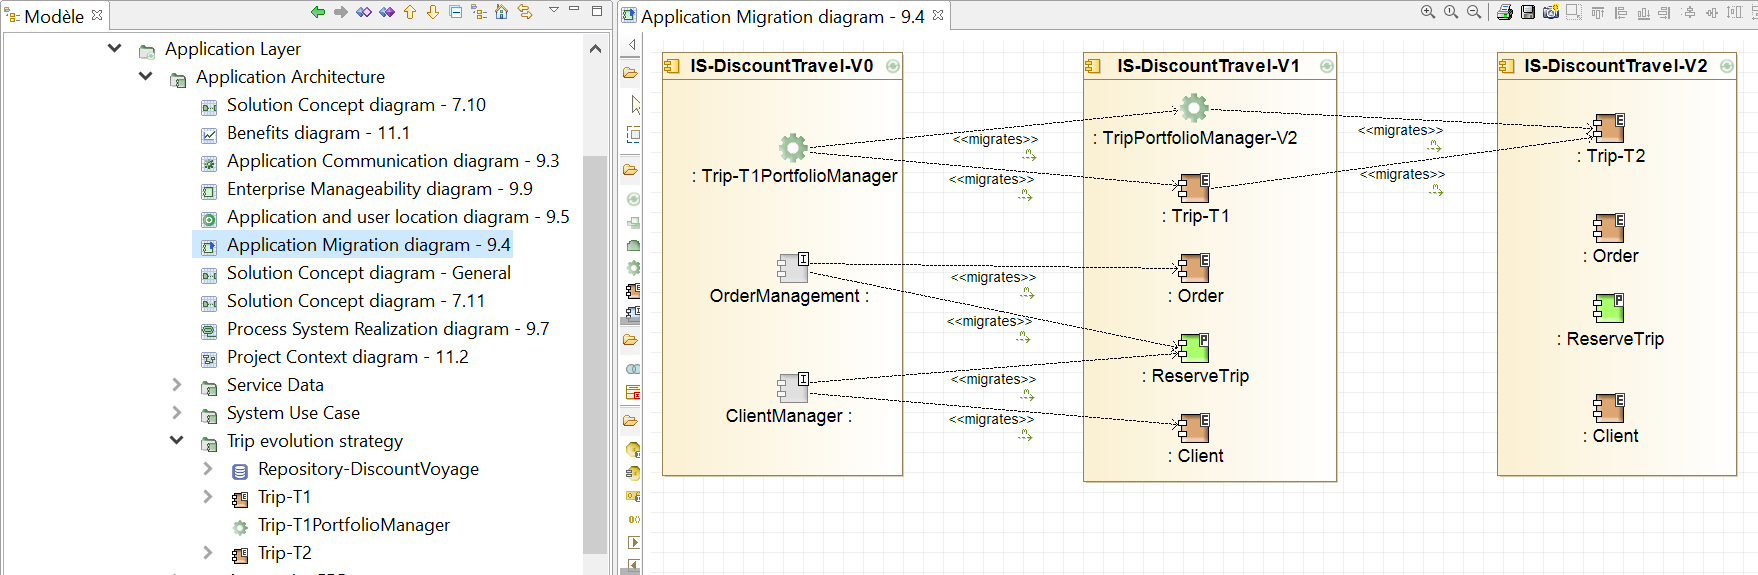 togaf-le-diagramme-de-migration-applicative.png